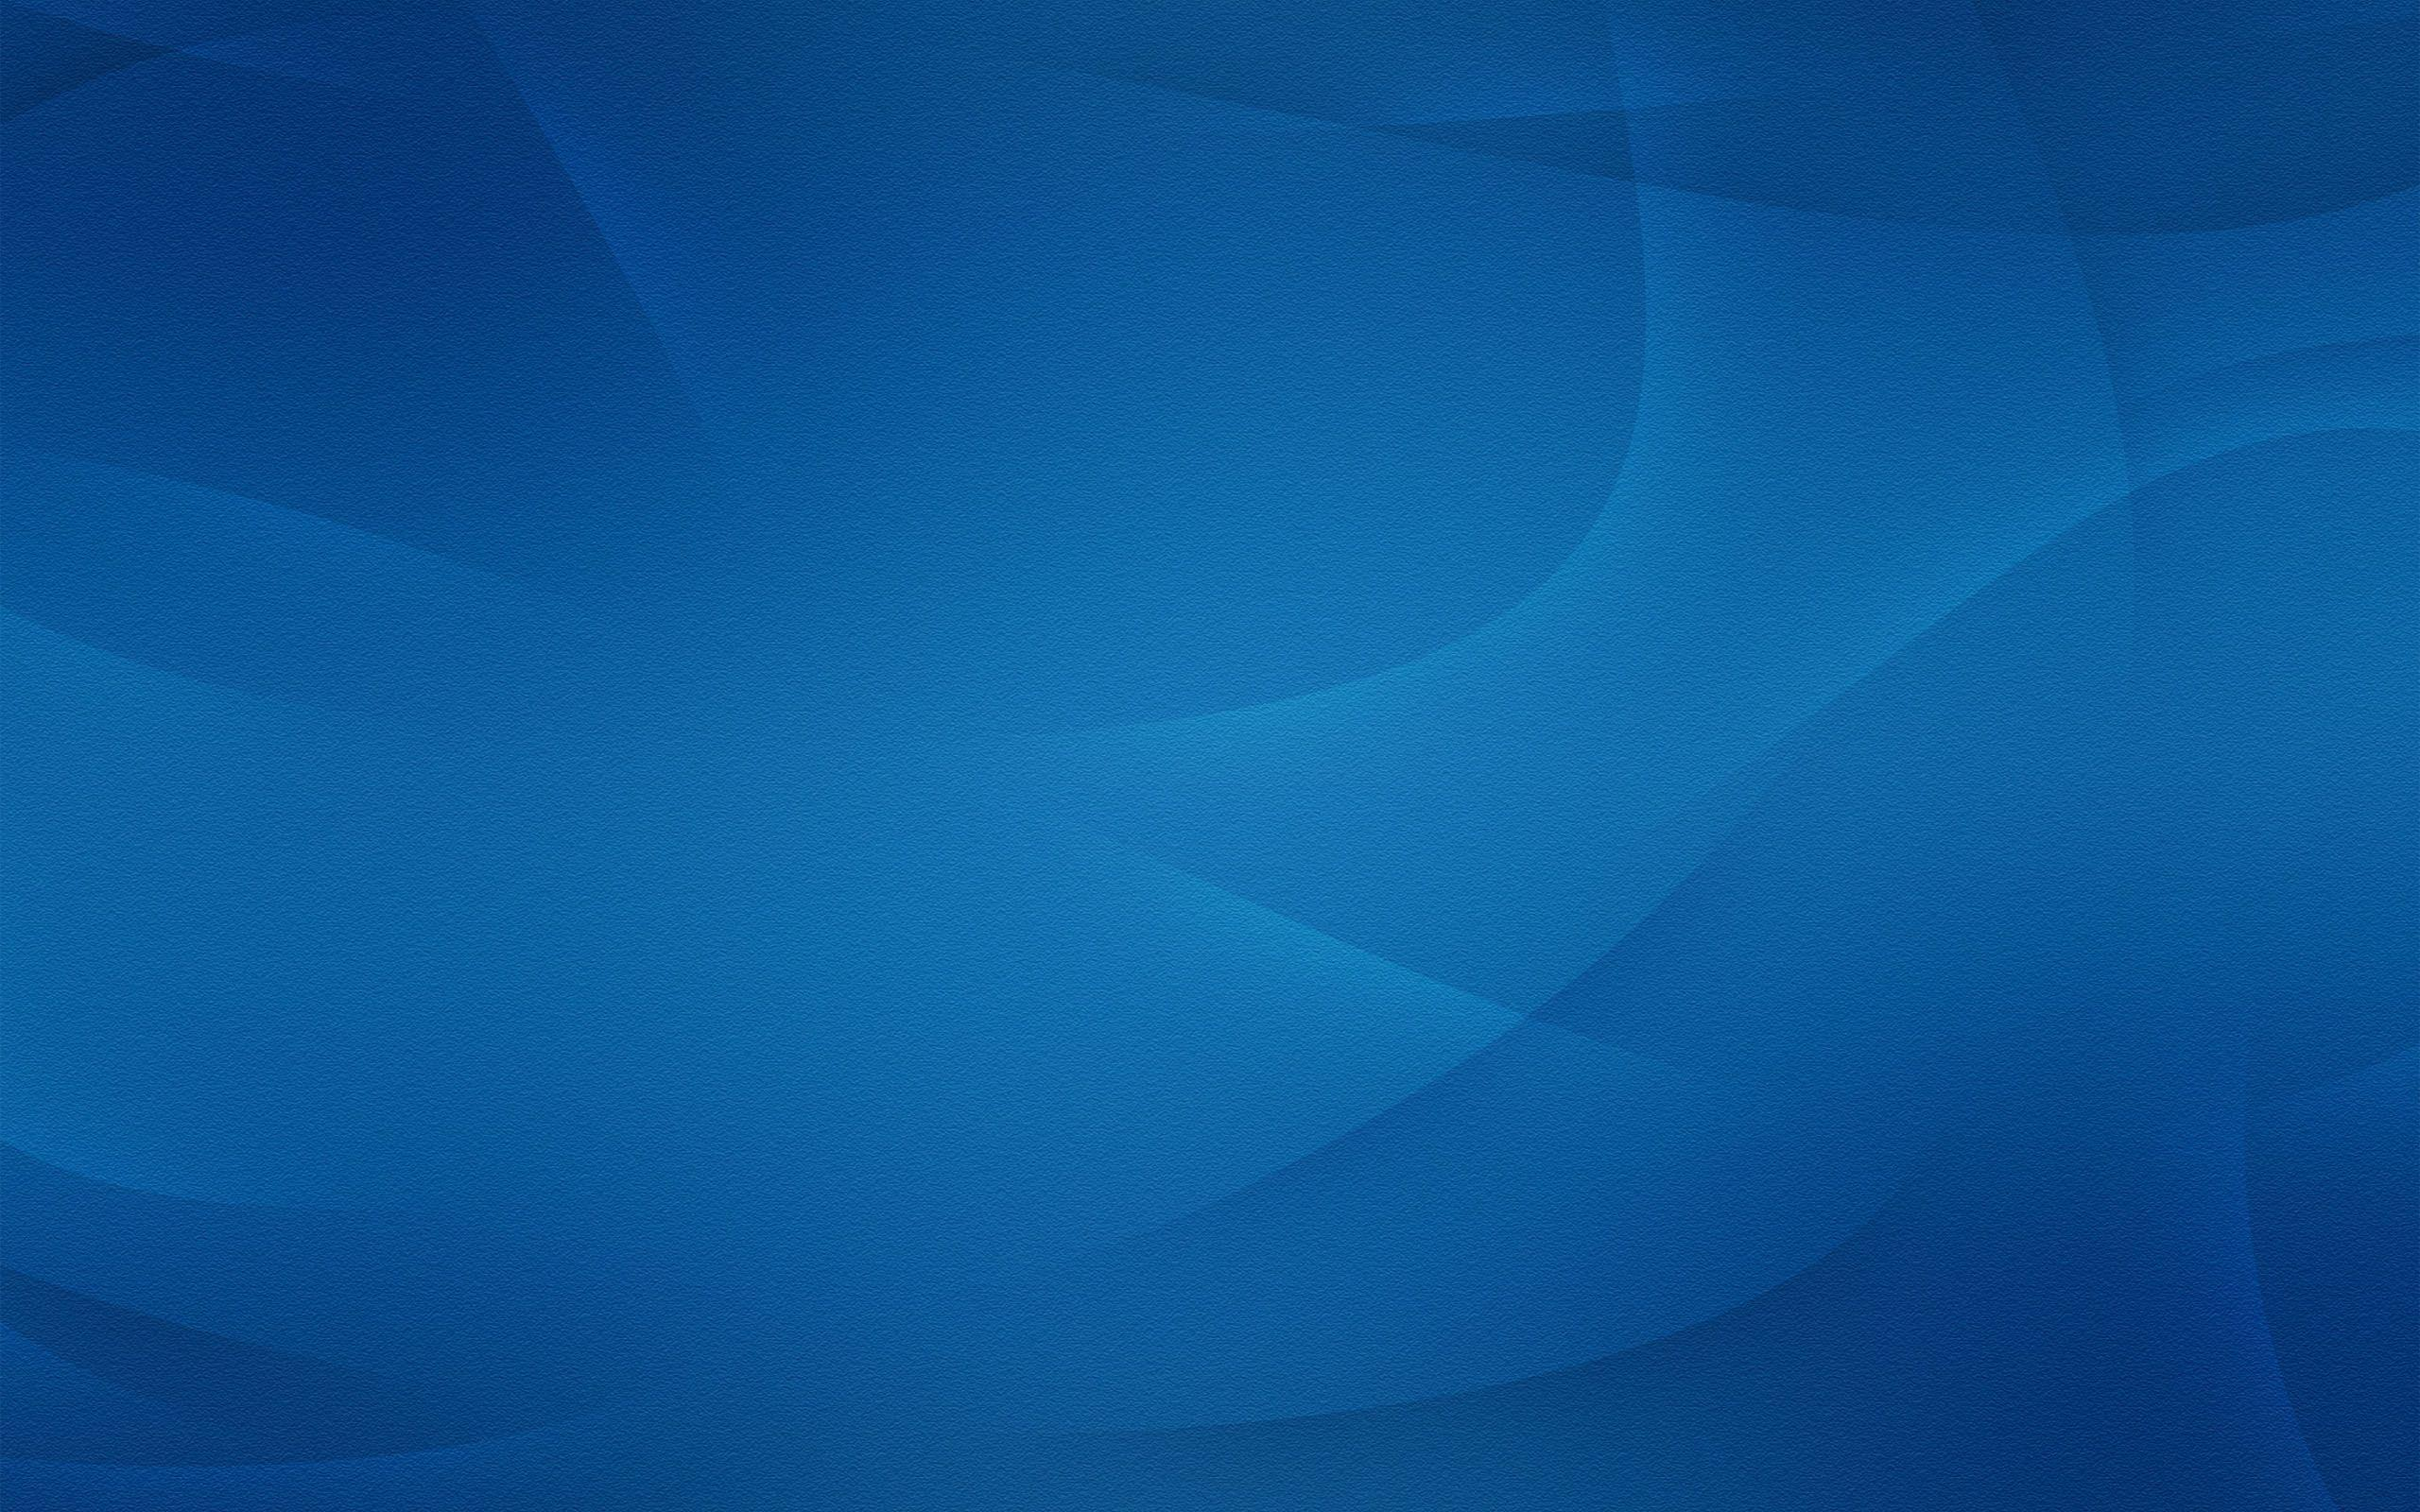 abstract wallpapers blue wallpaper cave